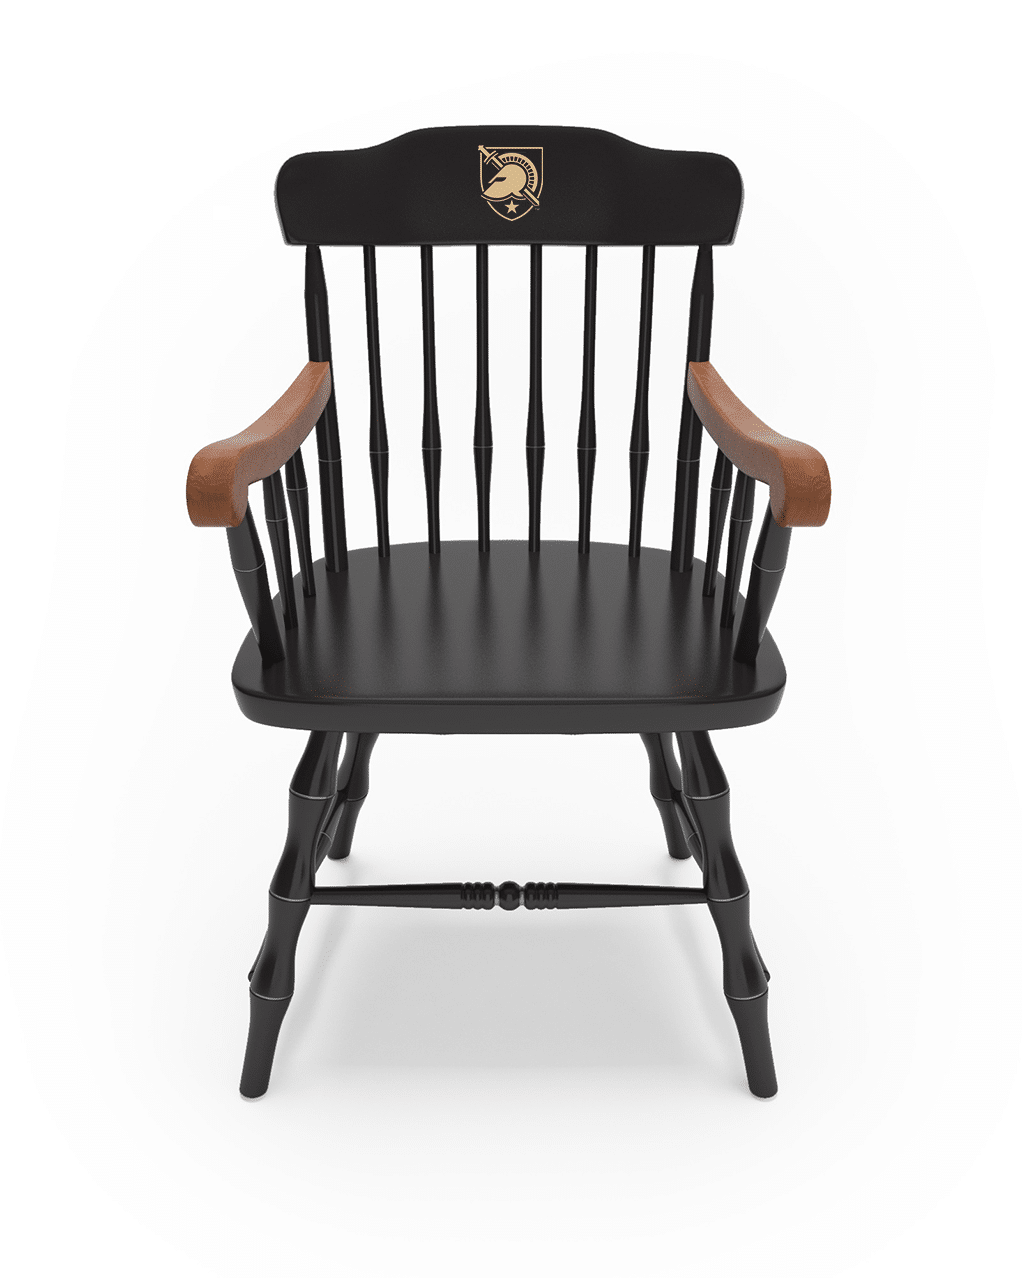 Fantastic West Point U S Military Academy Affinity Traditional Captains Chair Atcc Traditional Crest In Gold Alumnichairs Com Dailytribune Chair Design For Home Dailytribuneorg